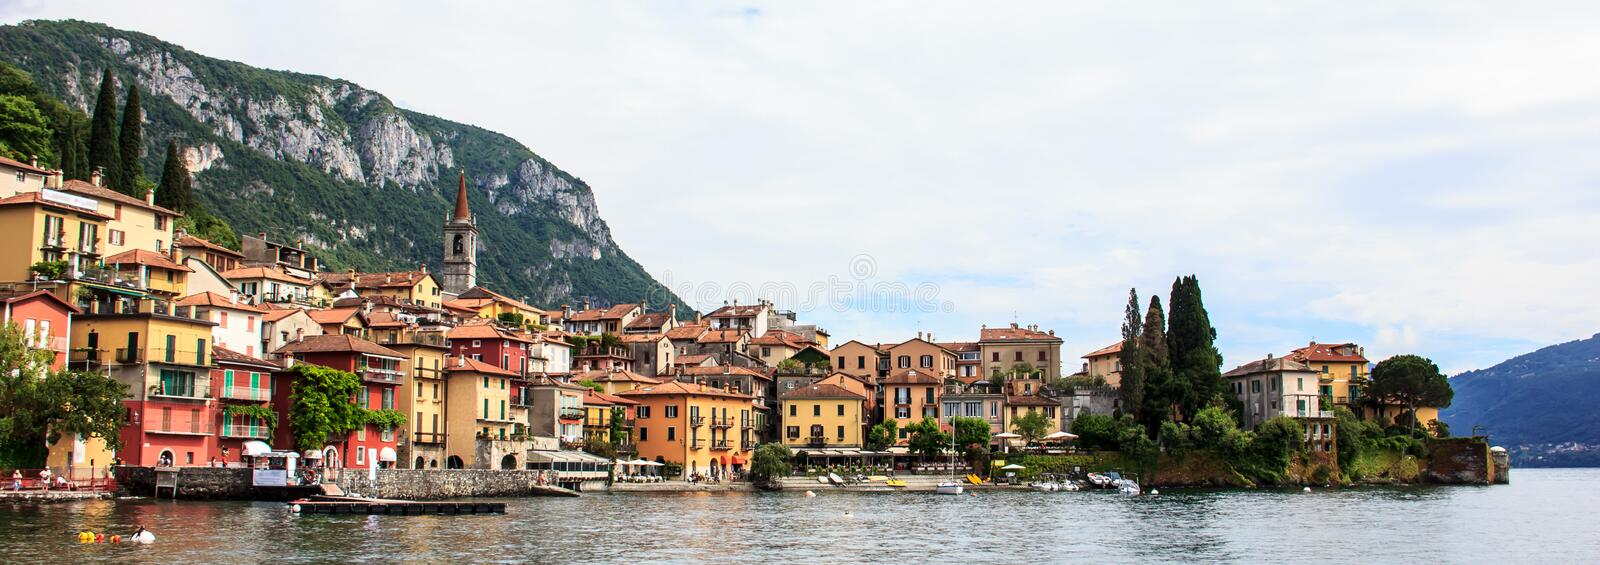 Picturesque Panorama view of beautiful Varenna Town, Lake Como, Lombardy, Italy, Europe royalty free stock image